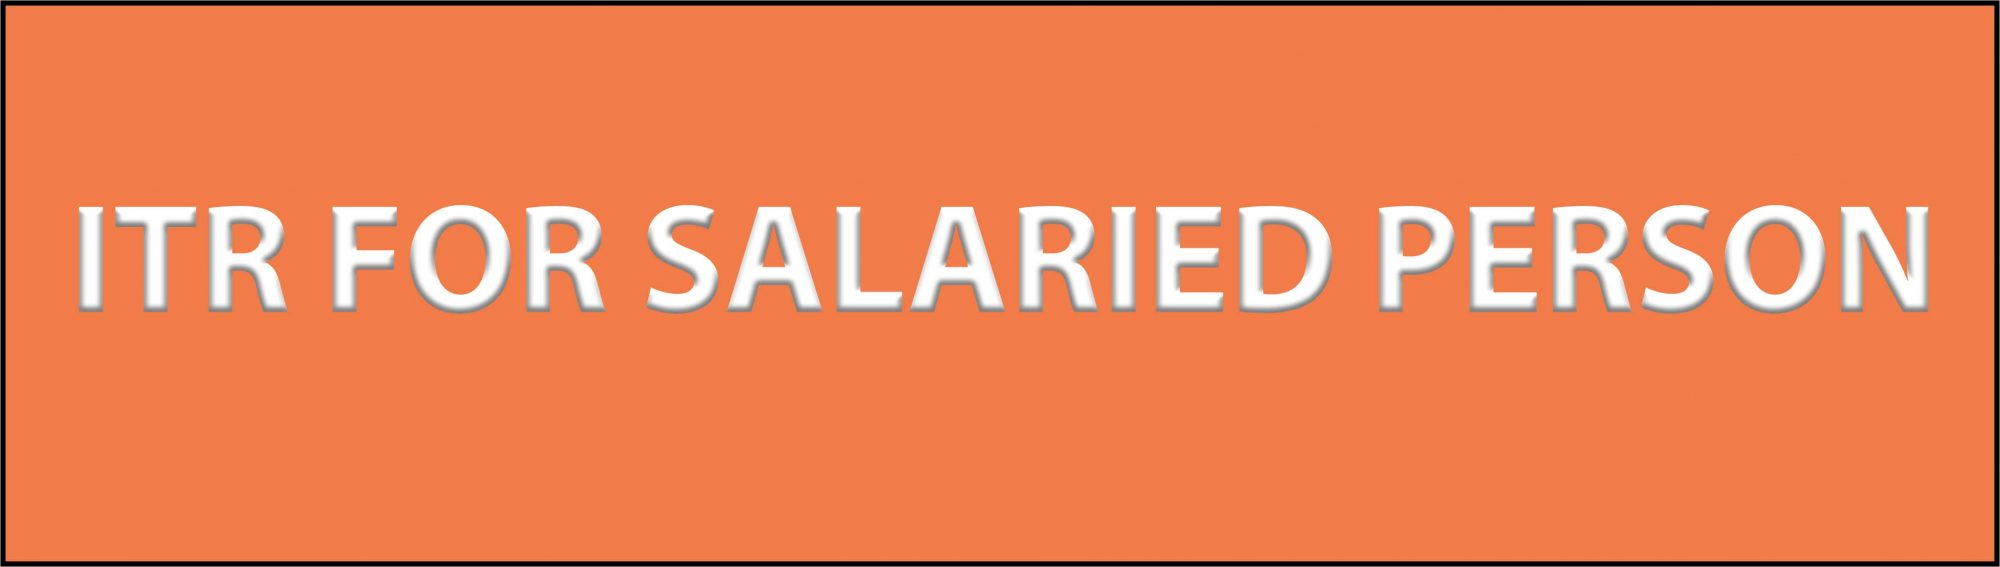 ITR FOR SALARIED PERSON